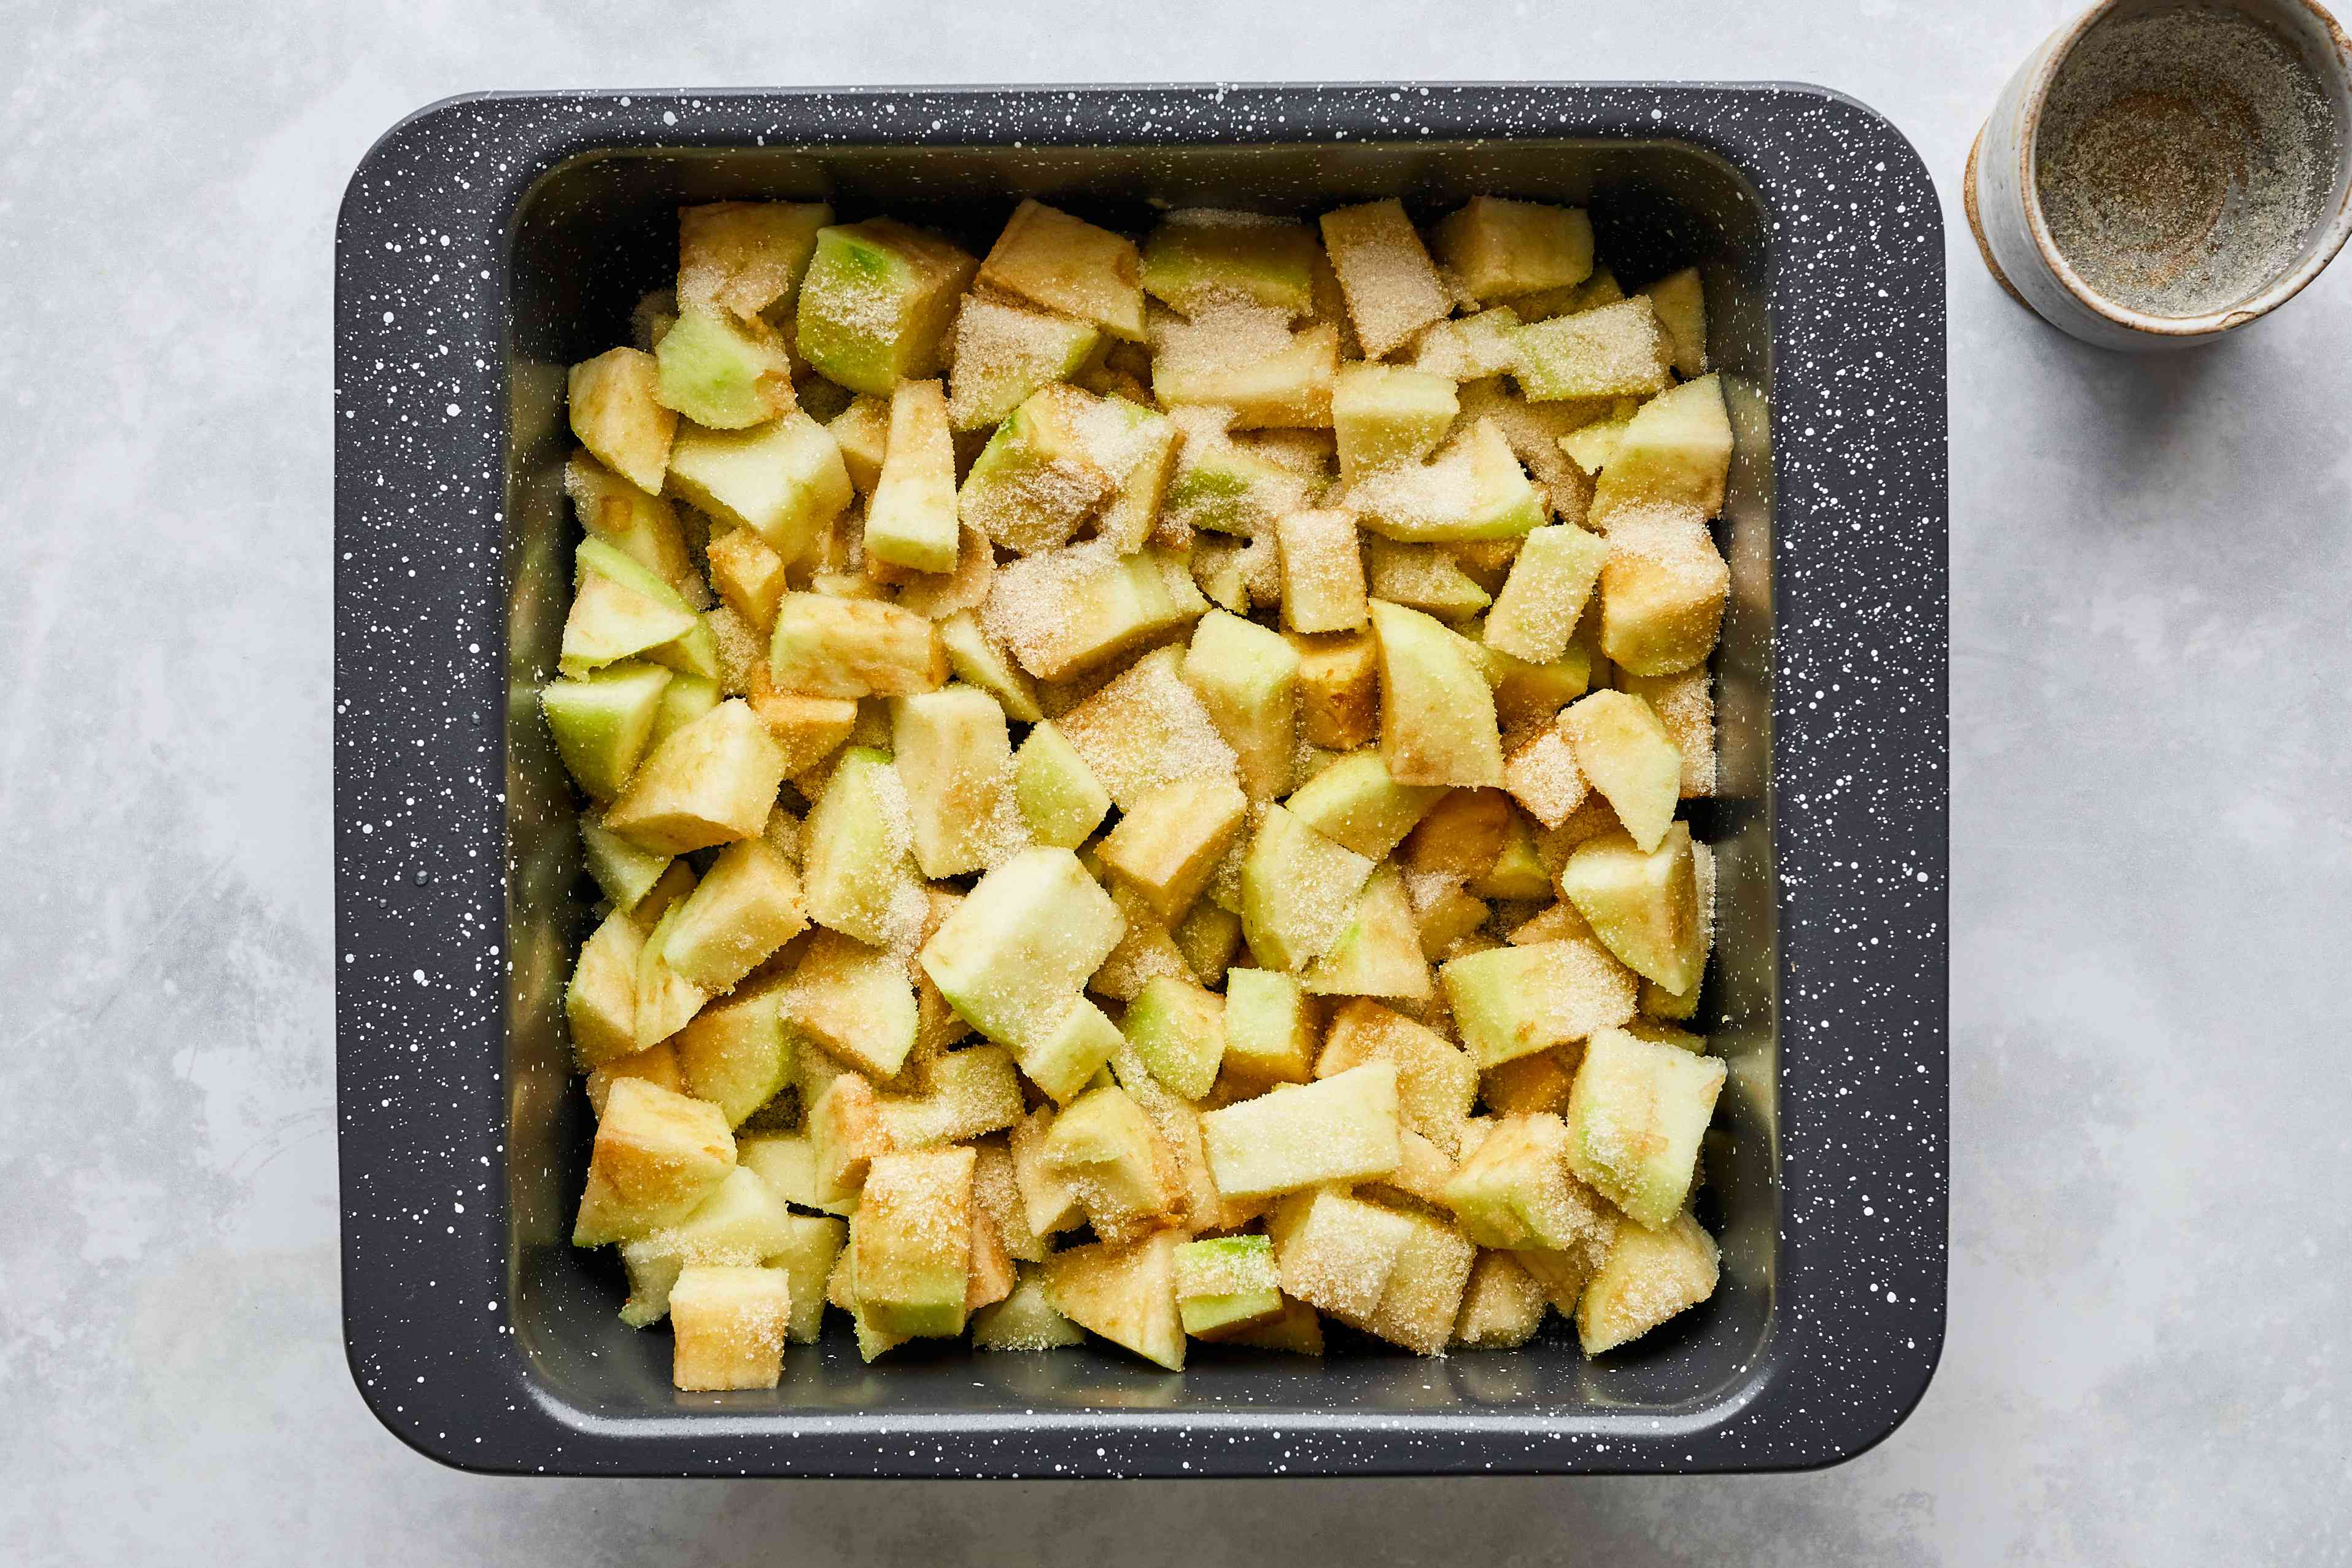 Diced apples and sugar in a shallow baking dish